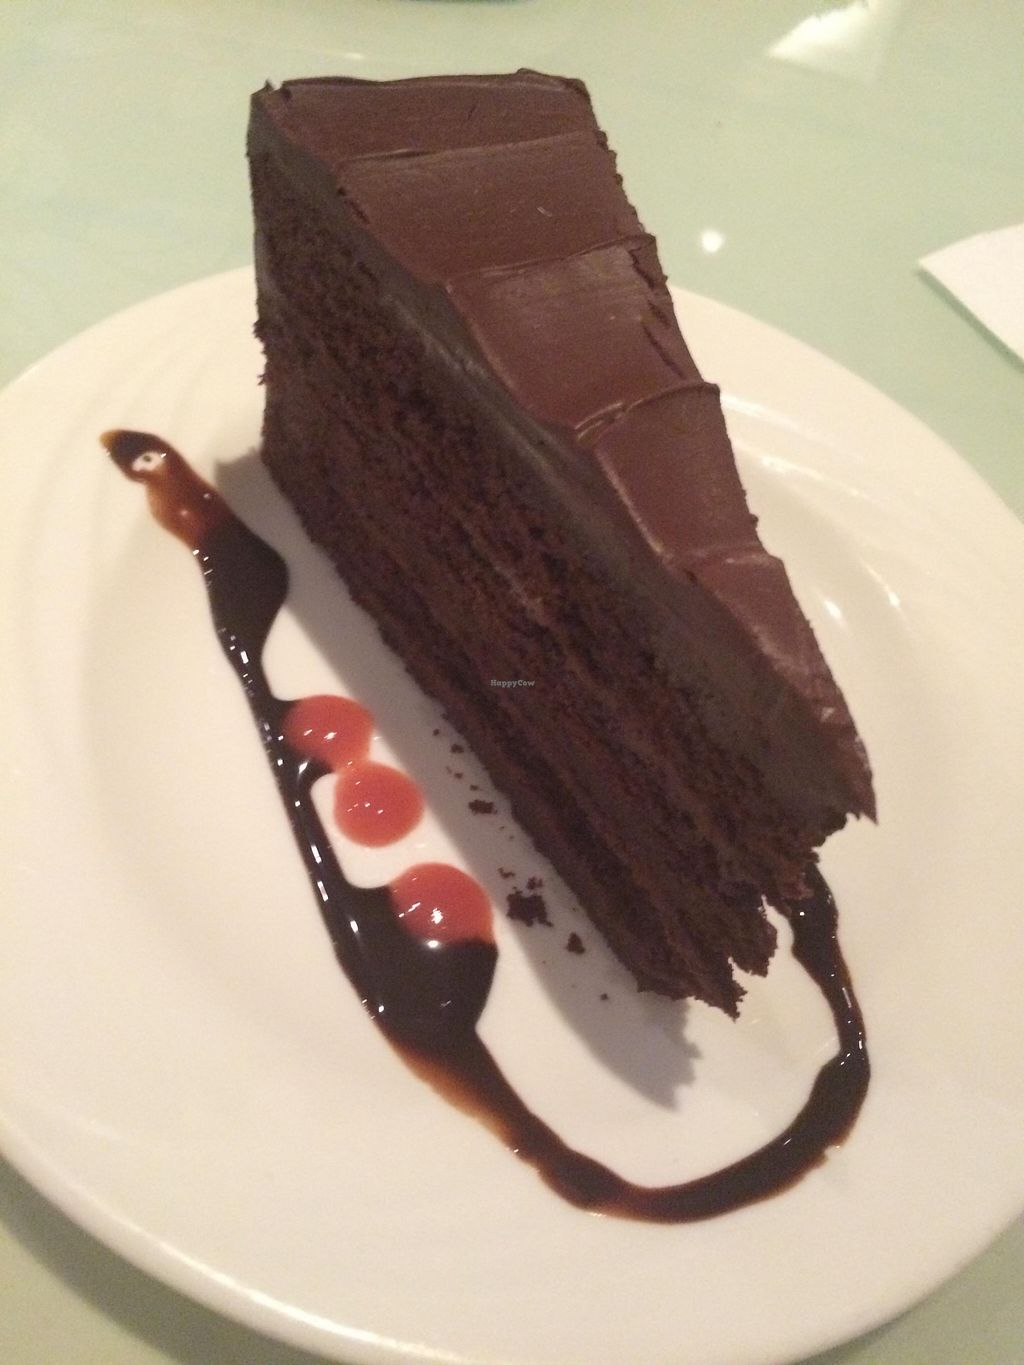 """Photo of Vegetarian Haven  by <a href=""""/members/profile/JazzyCow"""">JazzyCow</a> <br/>Chocolate Cake <br/> October 26, 2015  - <a href='/contact/abuse/image/3237/122789'>Report</a>"""